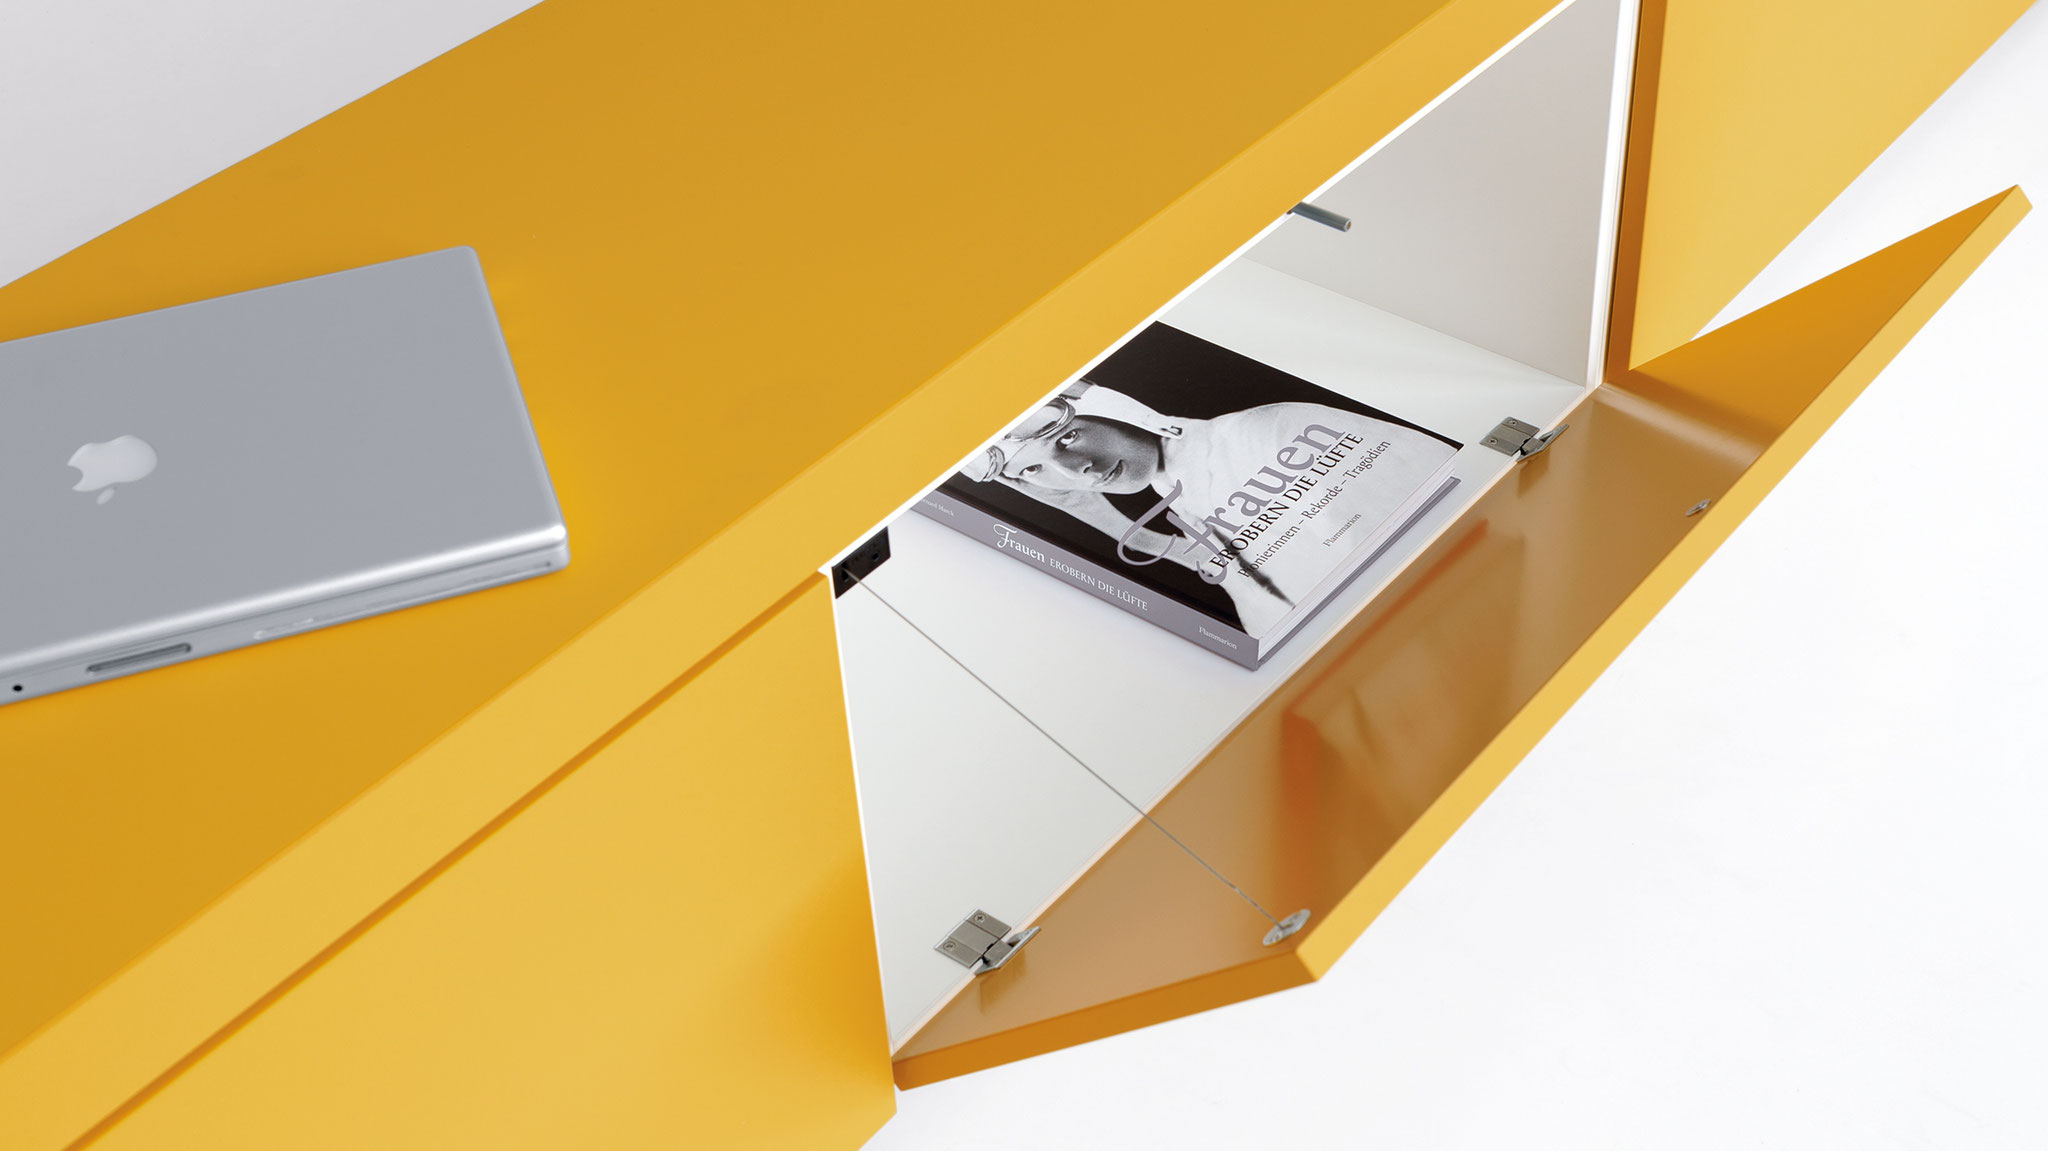 The bureau-style fold-down front opens from top to bottom and is useful for placing things on temporarily.